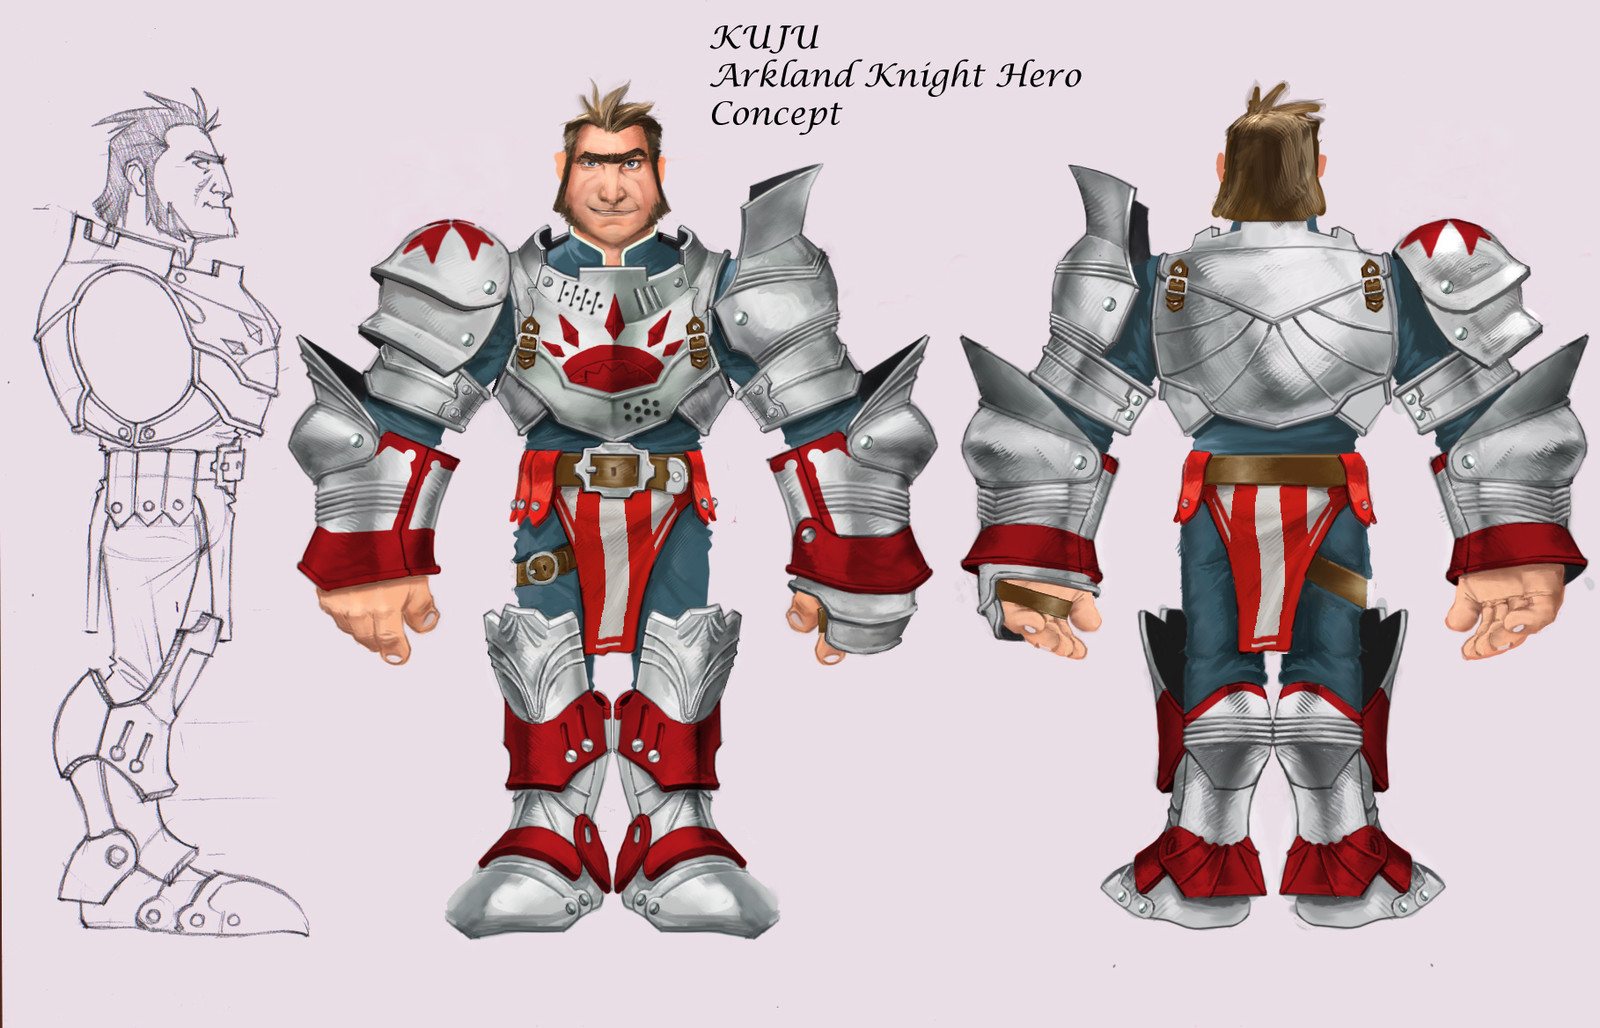 Knightwars characters for KUJU Uk